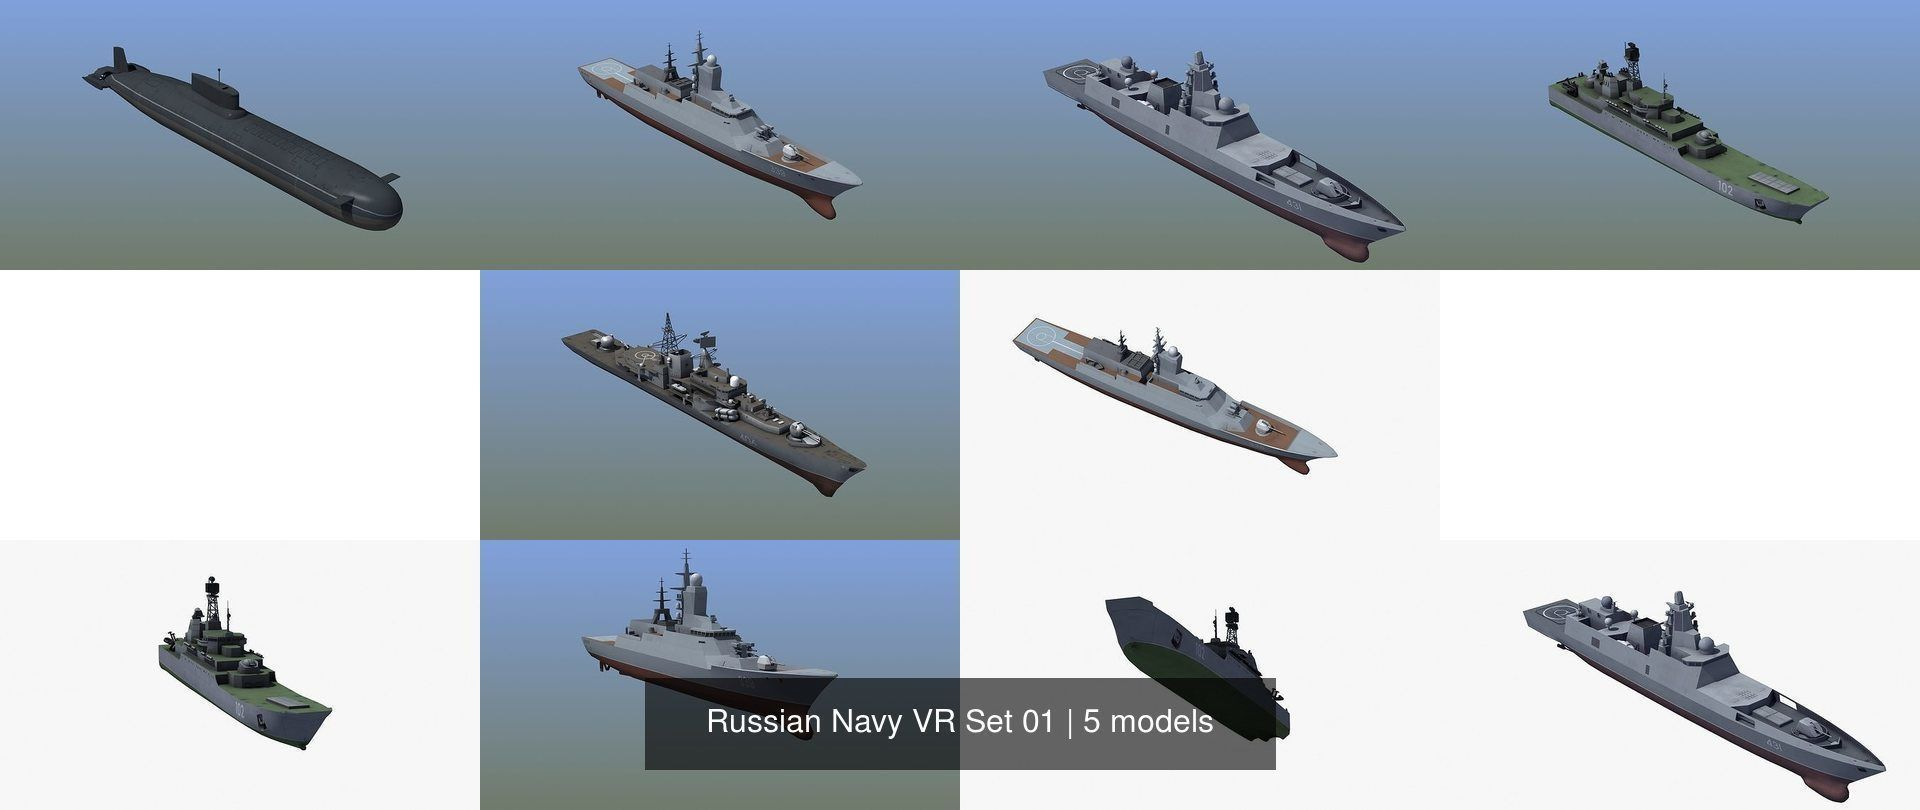 Russian Navy VR Set 01